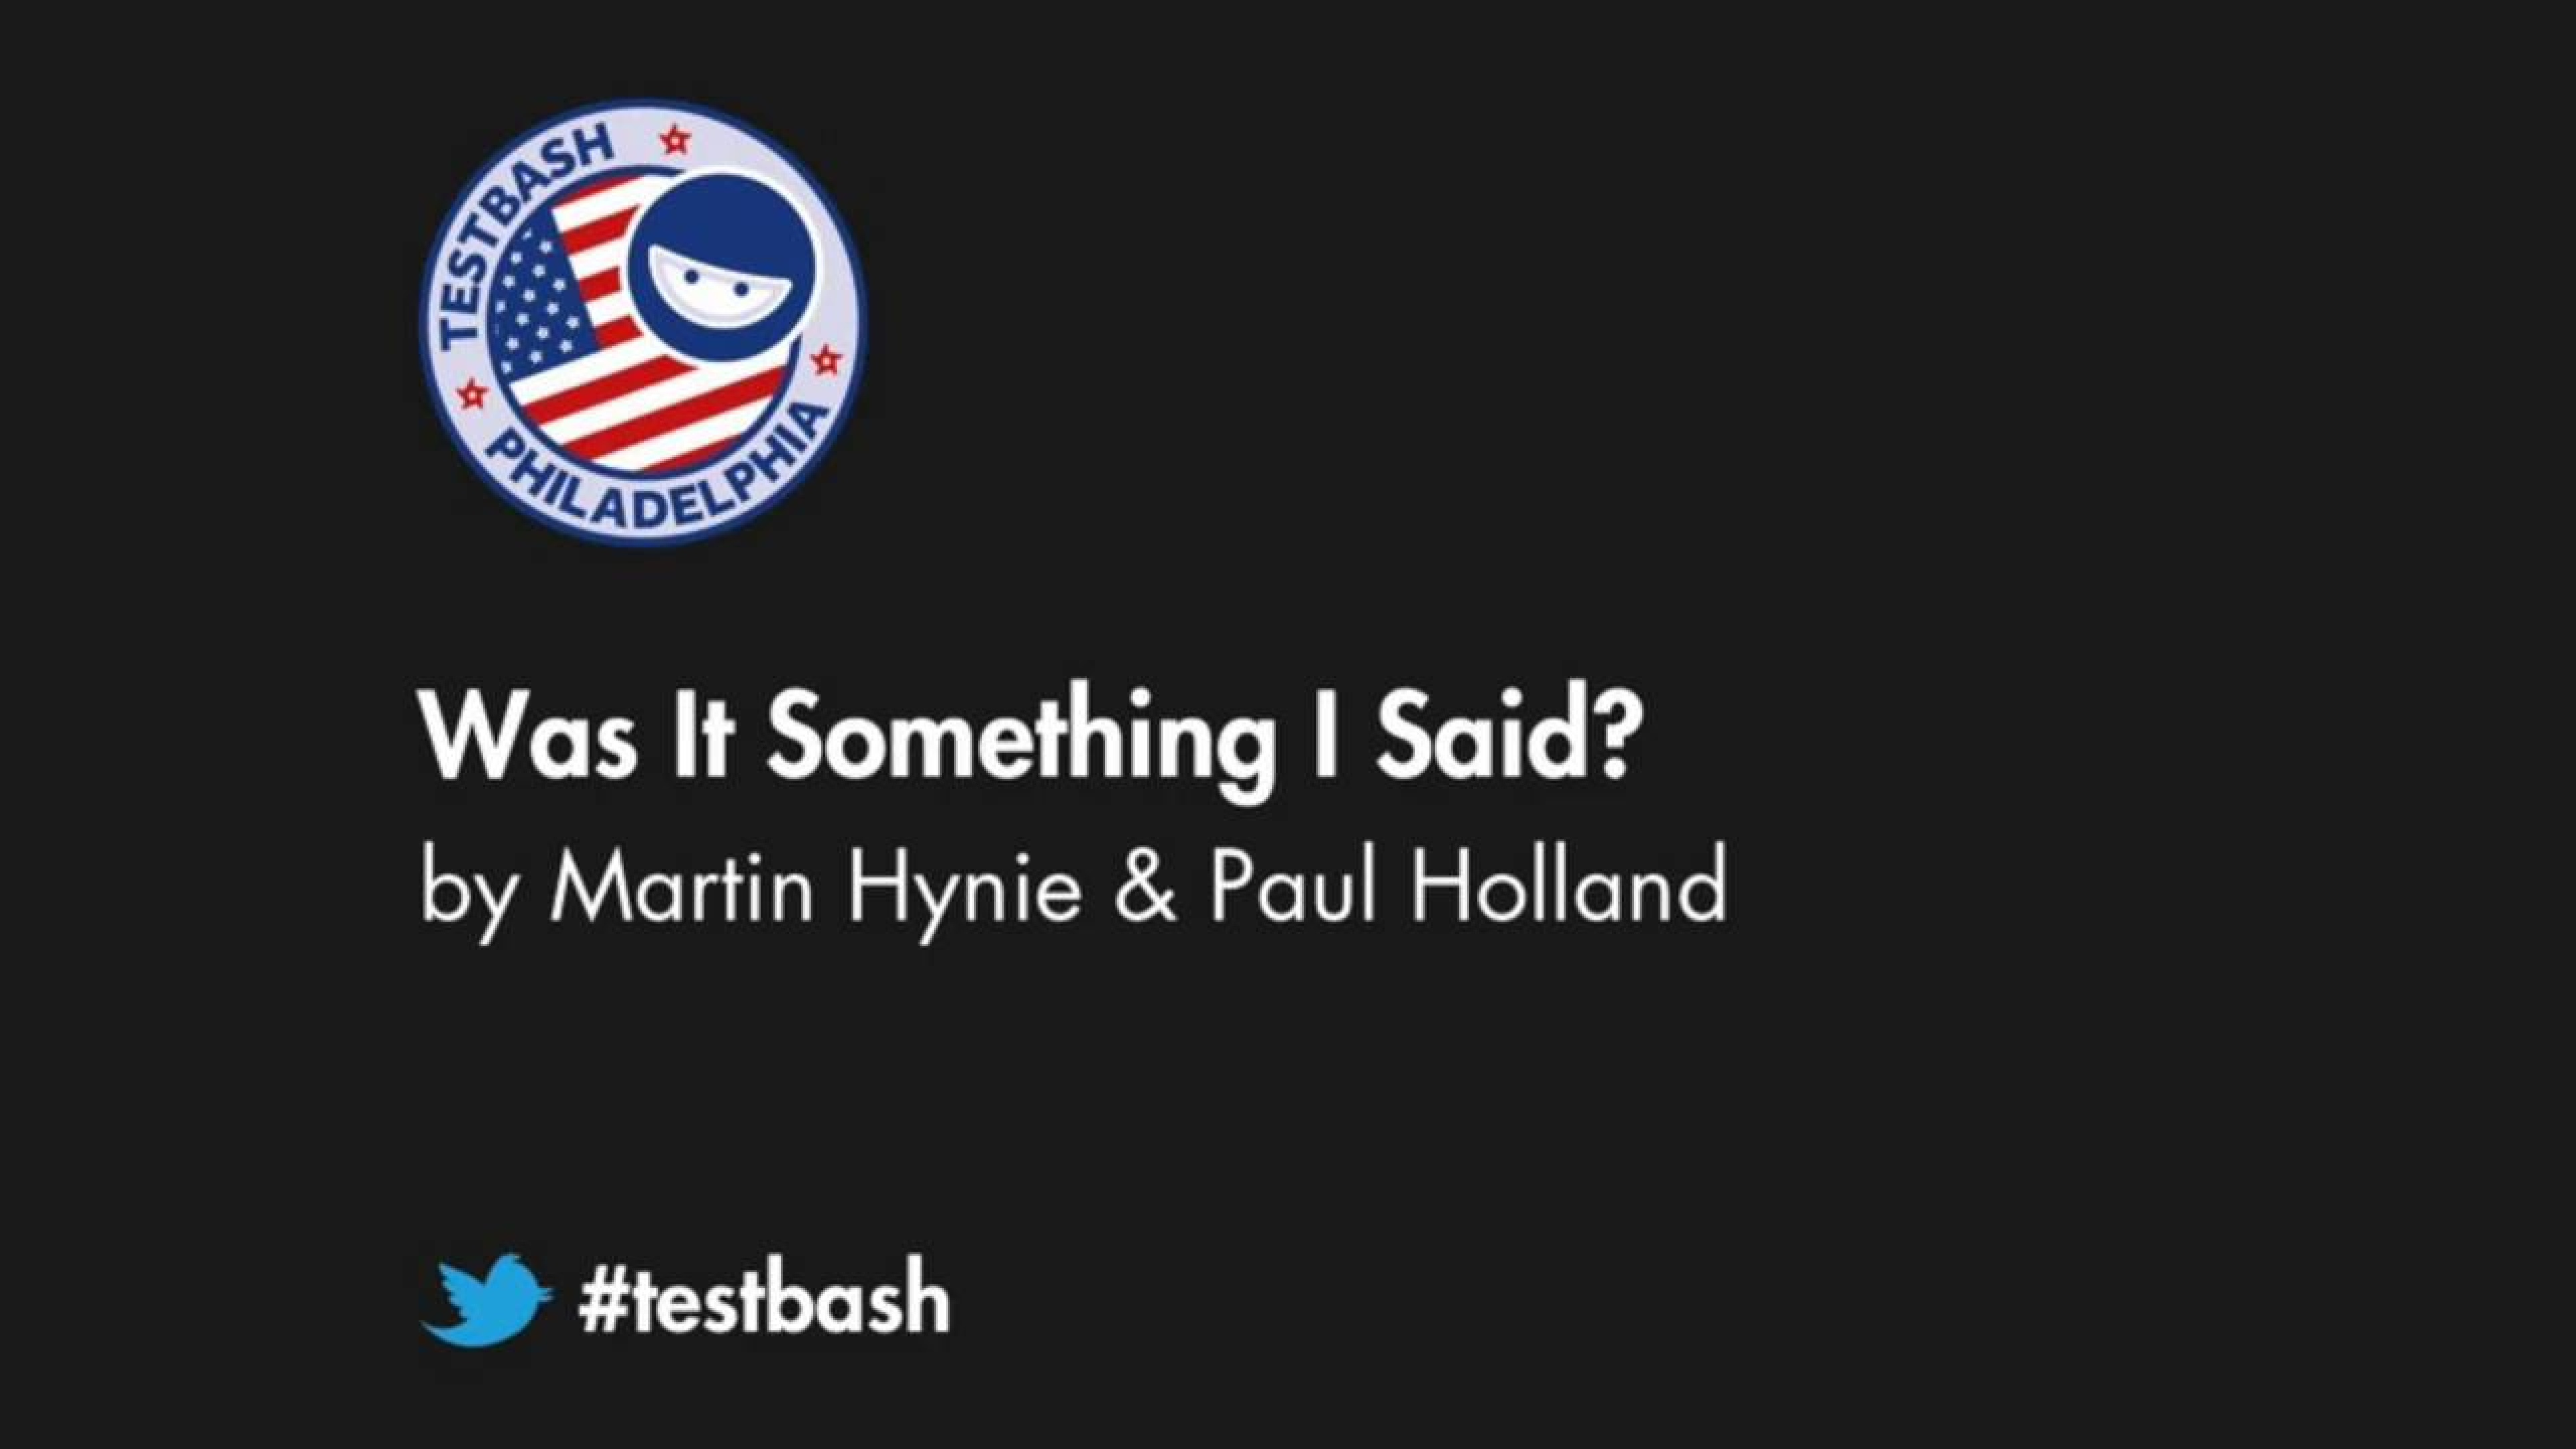 Was It Something I Said? - Martin Hynie & Paul Holland